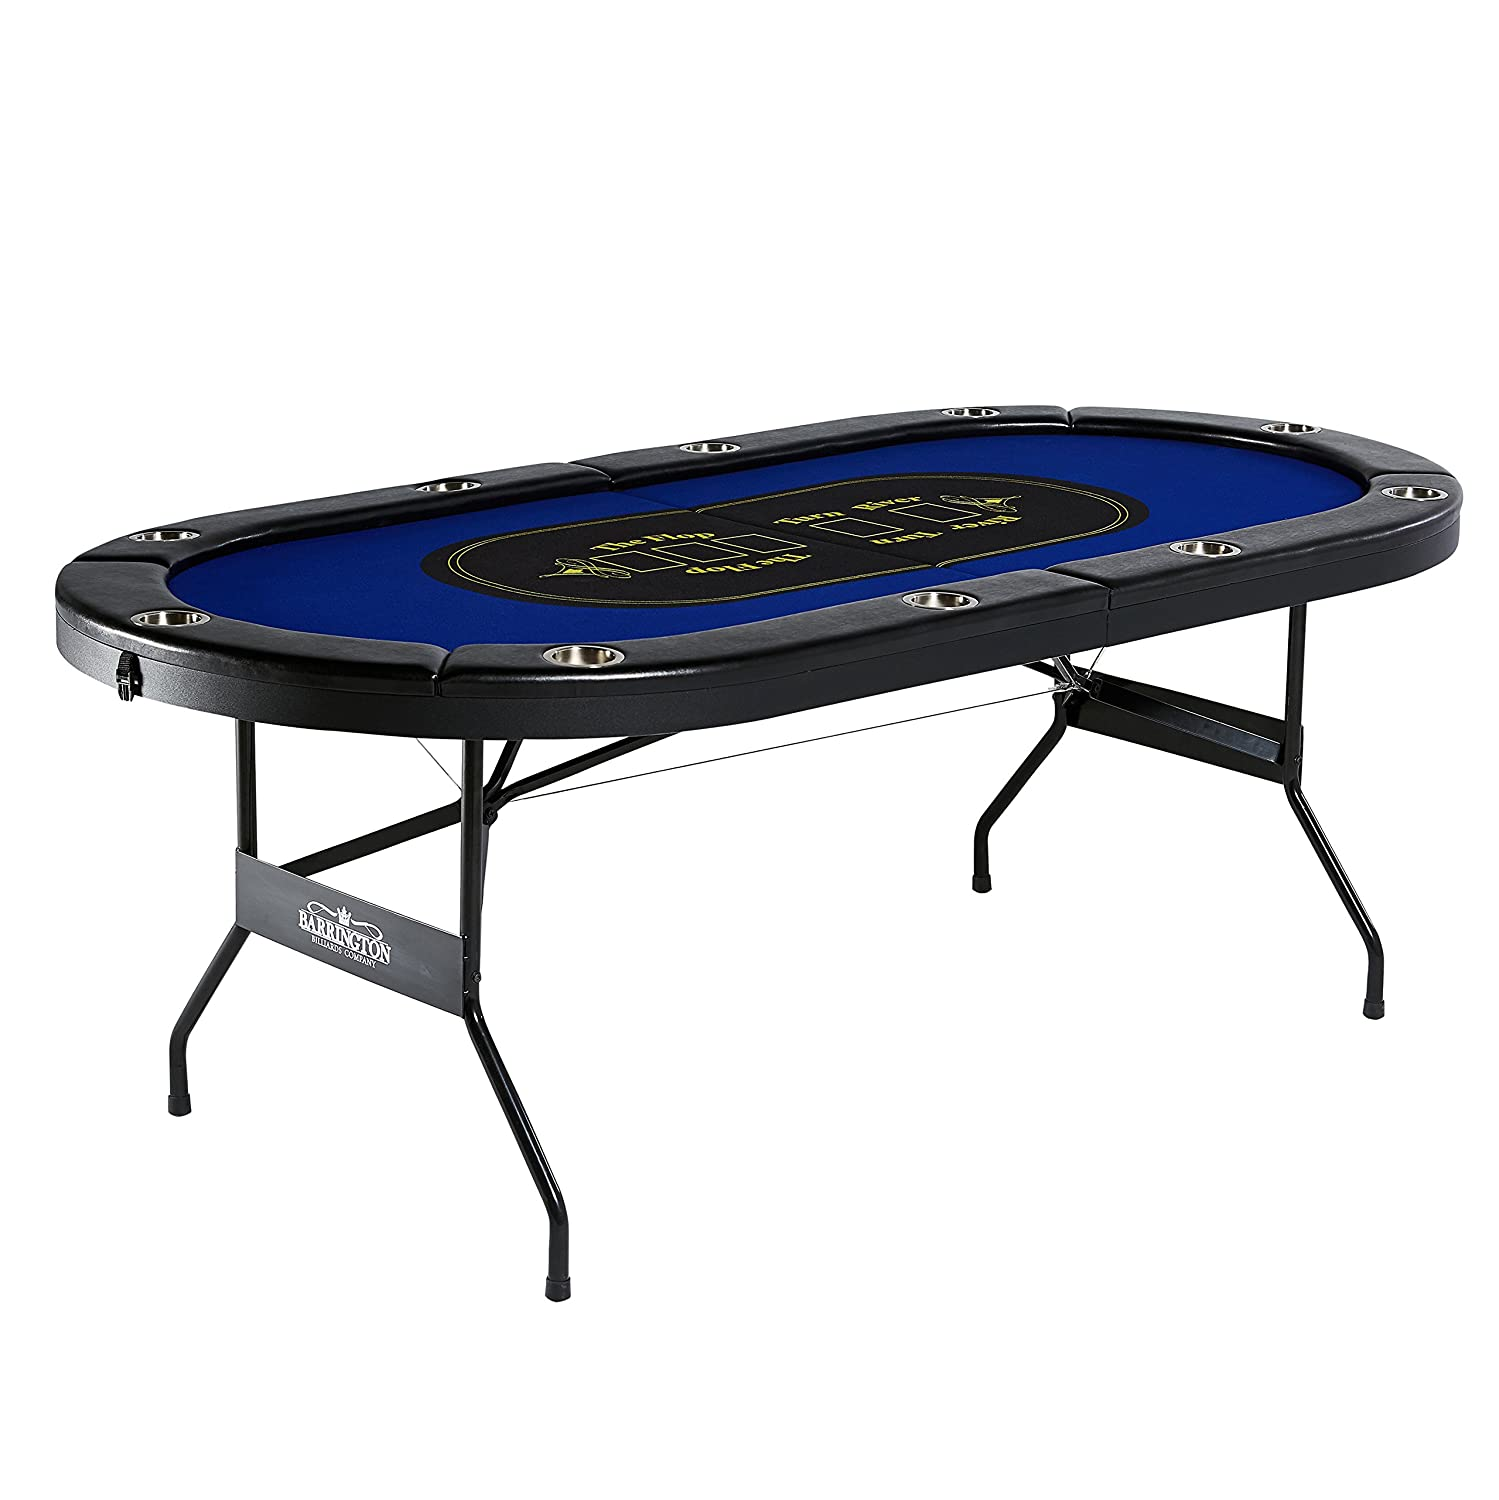 Amazon.com : Barrington Texas Holdem Poker Table for 10 Players with ...